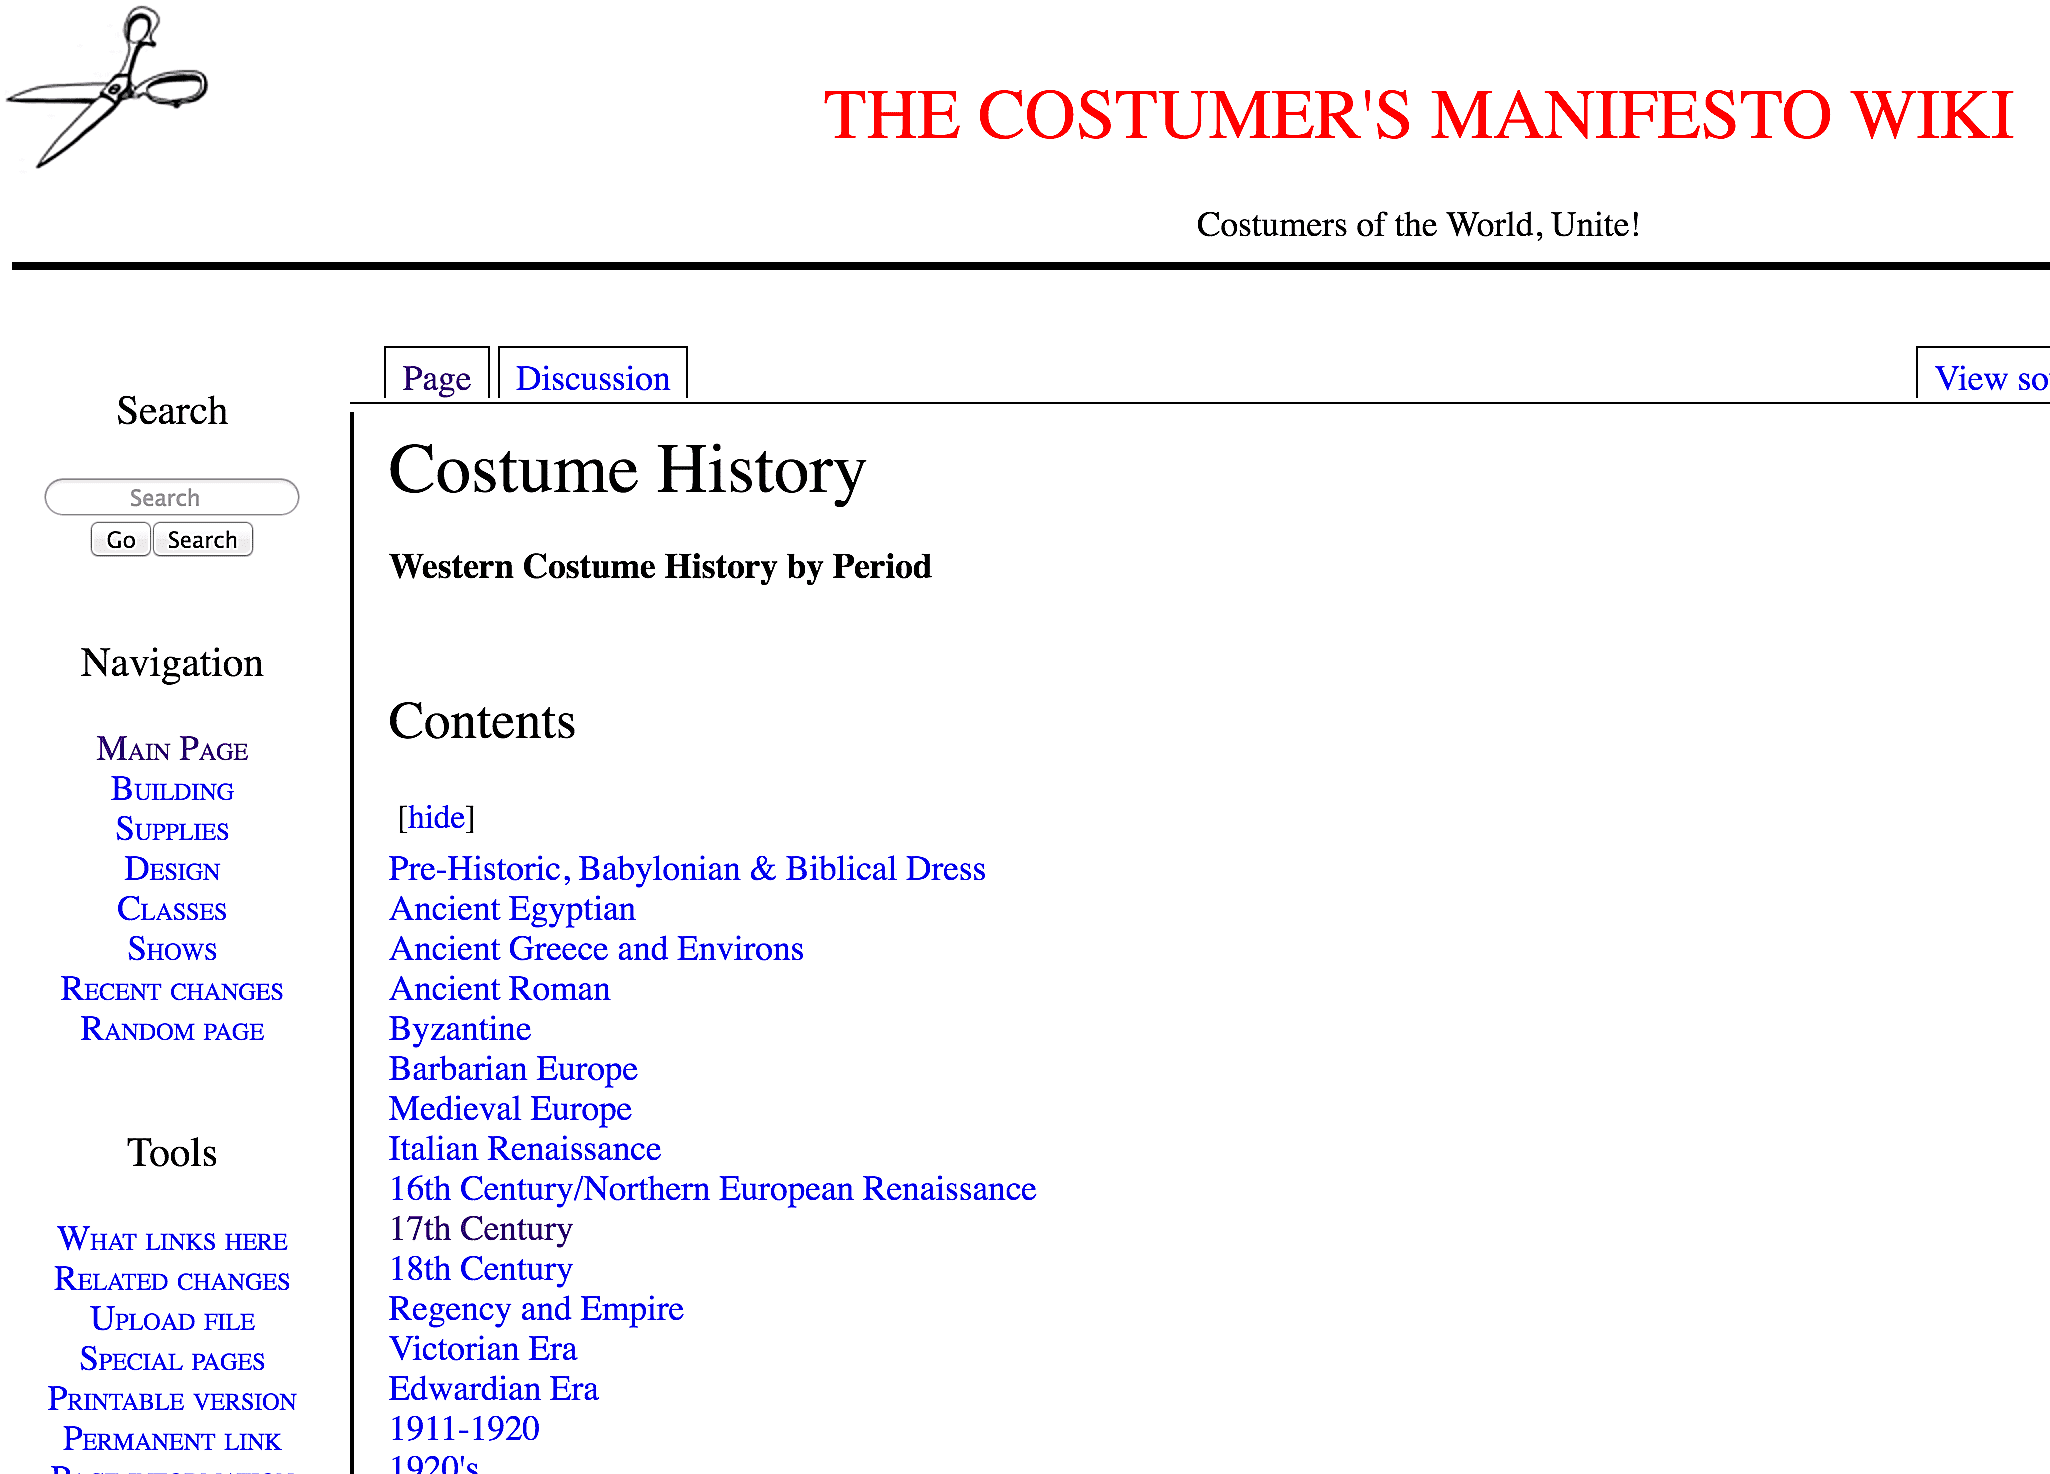 The Costumer's Manifesto began in August 1996 and provides a wealth of content on fashion and costume history around the world.